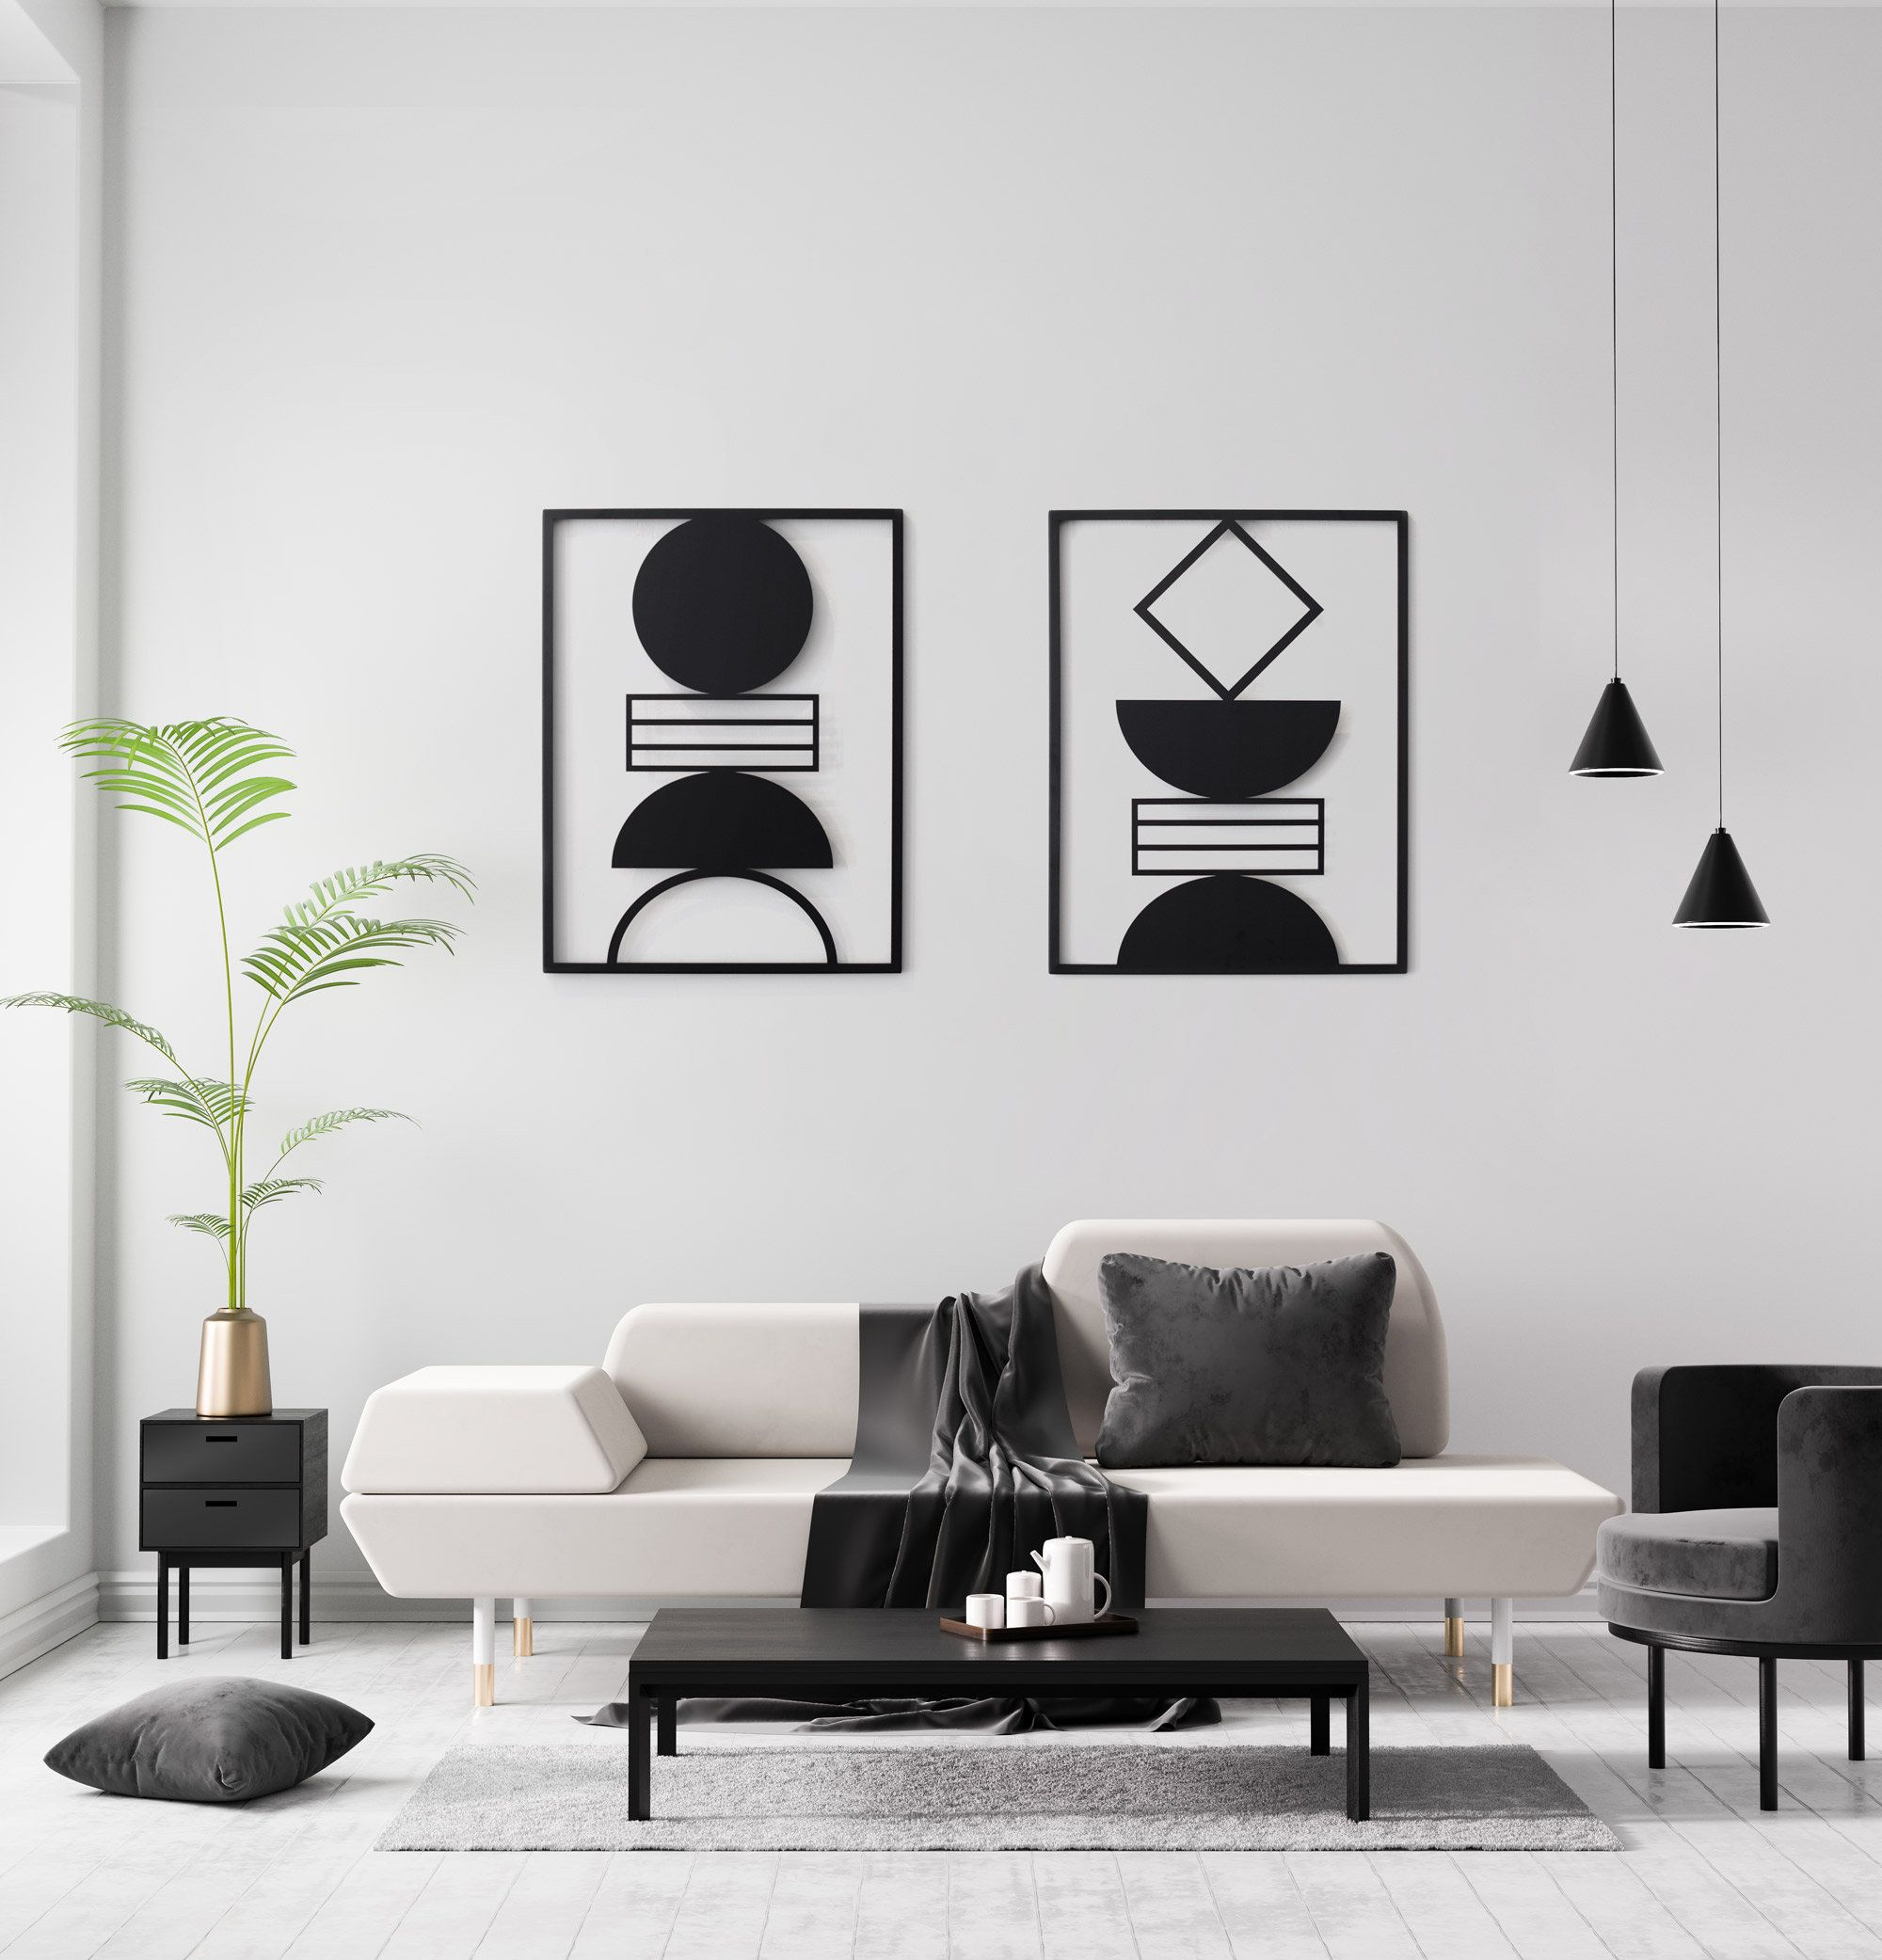 Wall Art Set Of 2 Framed Metal Art Interior Decor Metal Wall Decor Modern Geometric Room Decor Black Metal Art Bedroom Wall Decor 2020 Resimler